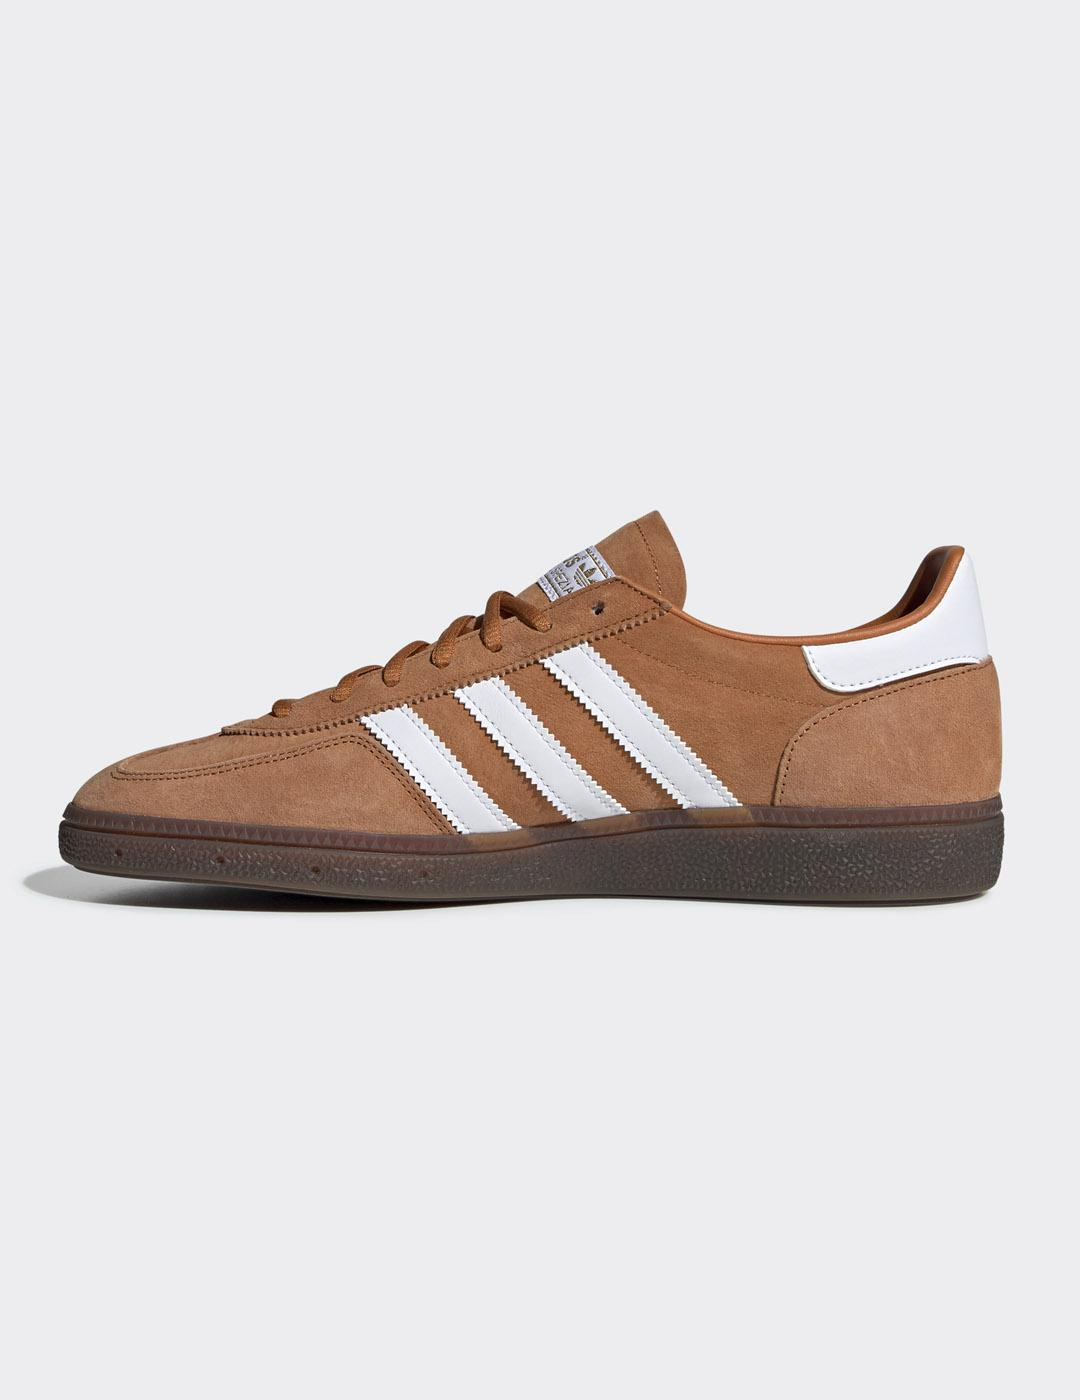 Zapatillas Adidas HANDBALL SPEZIAL - TECH COPPER CLOUD WH